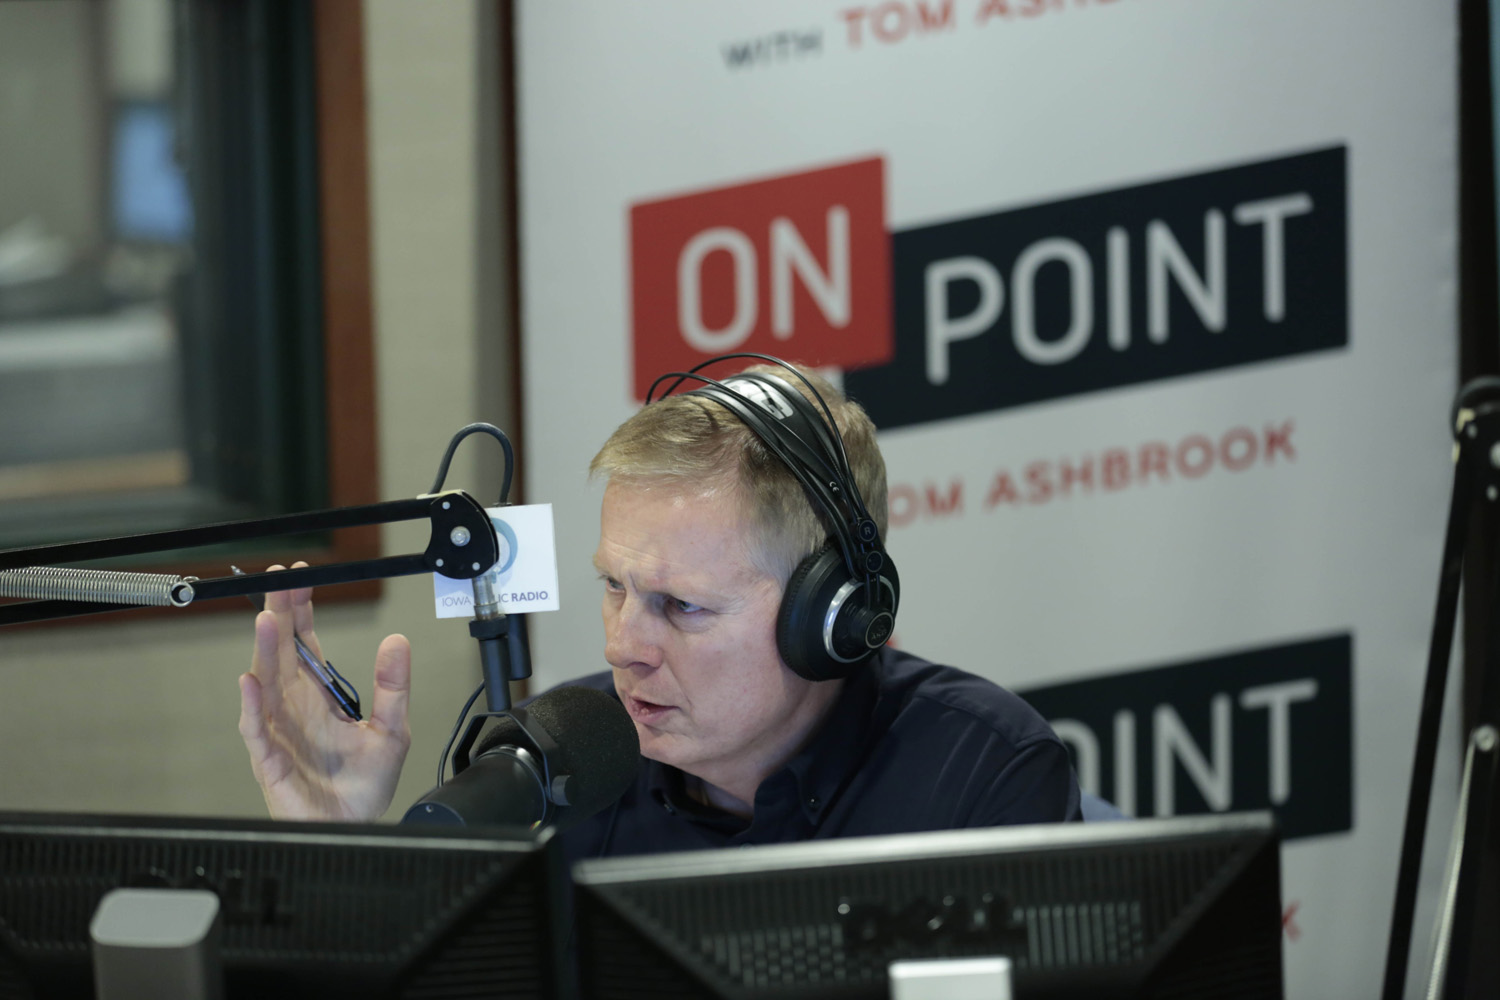 Tom Ashbrook broadcasts Friday morning, November 10, 2017, from Ames, Iowa on Iowa Public Radio. (Christopher Gannon/Iowa State University)